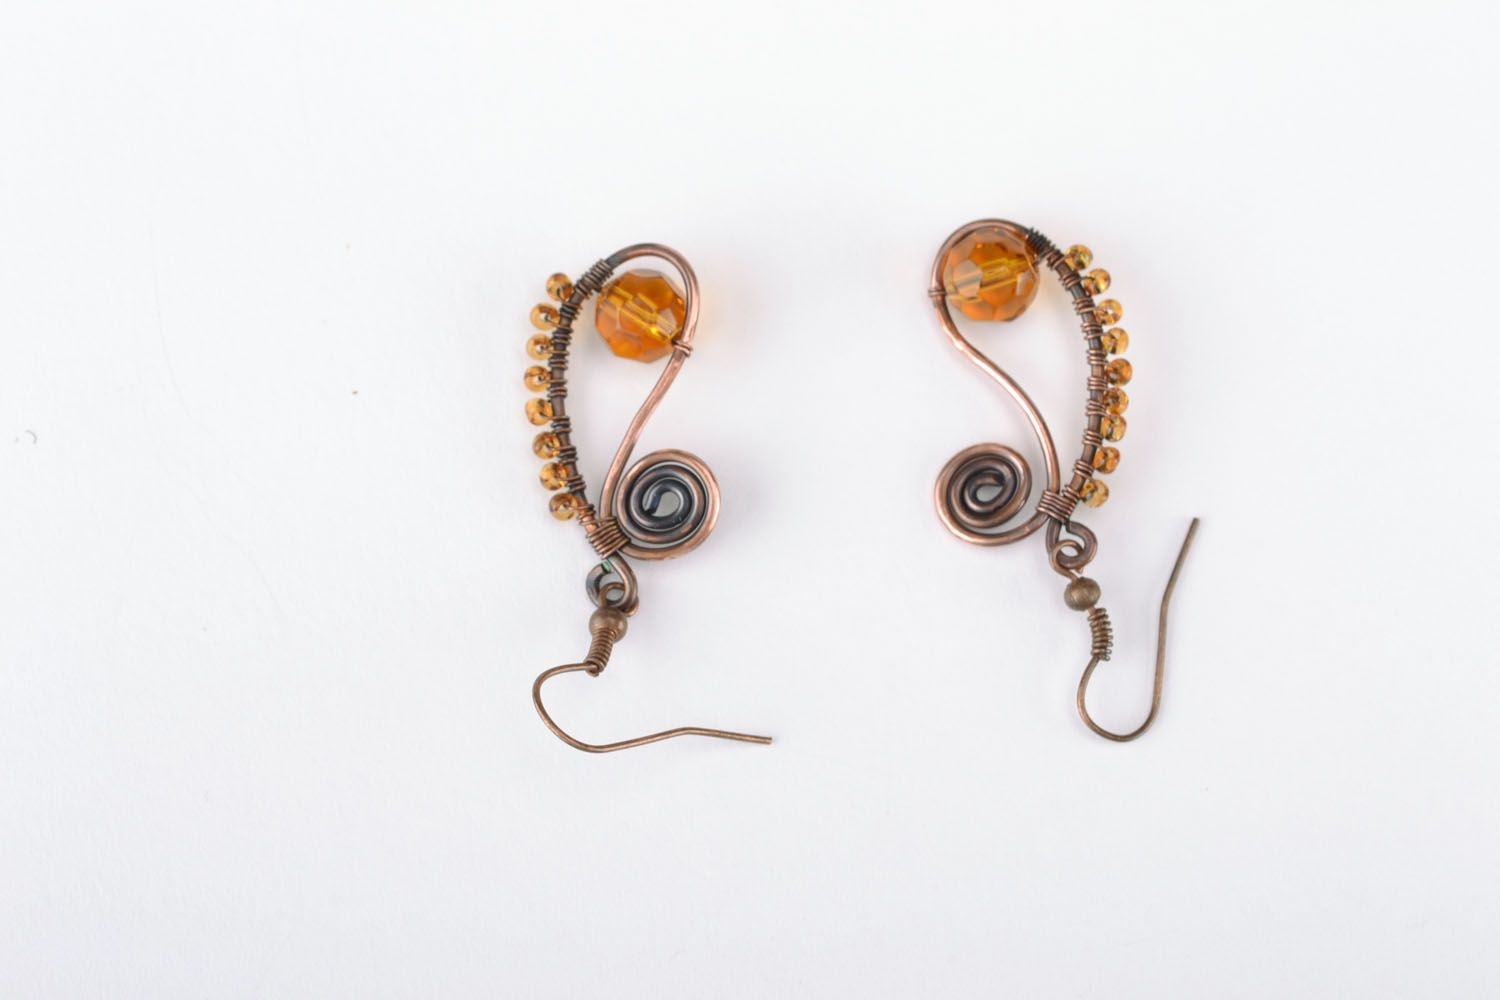 Earrings made of copper wire photo 1